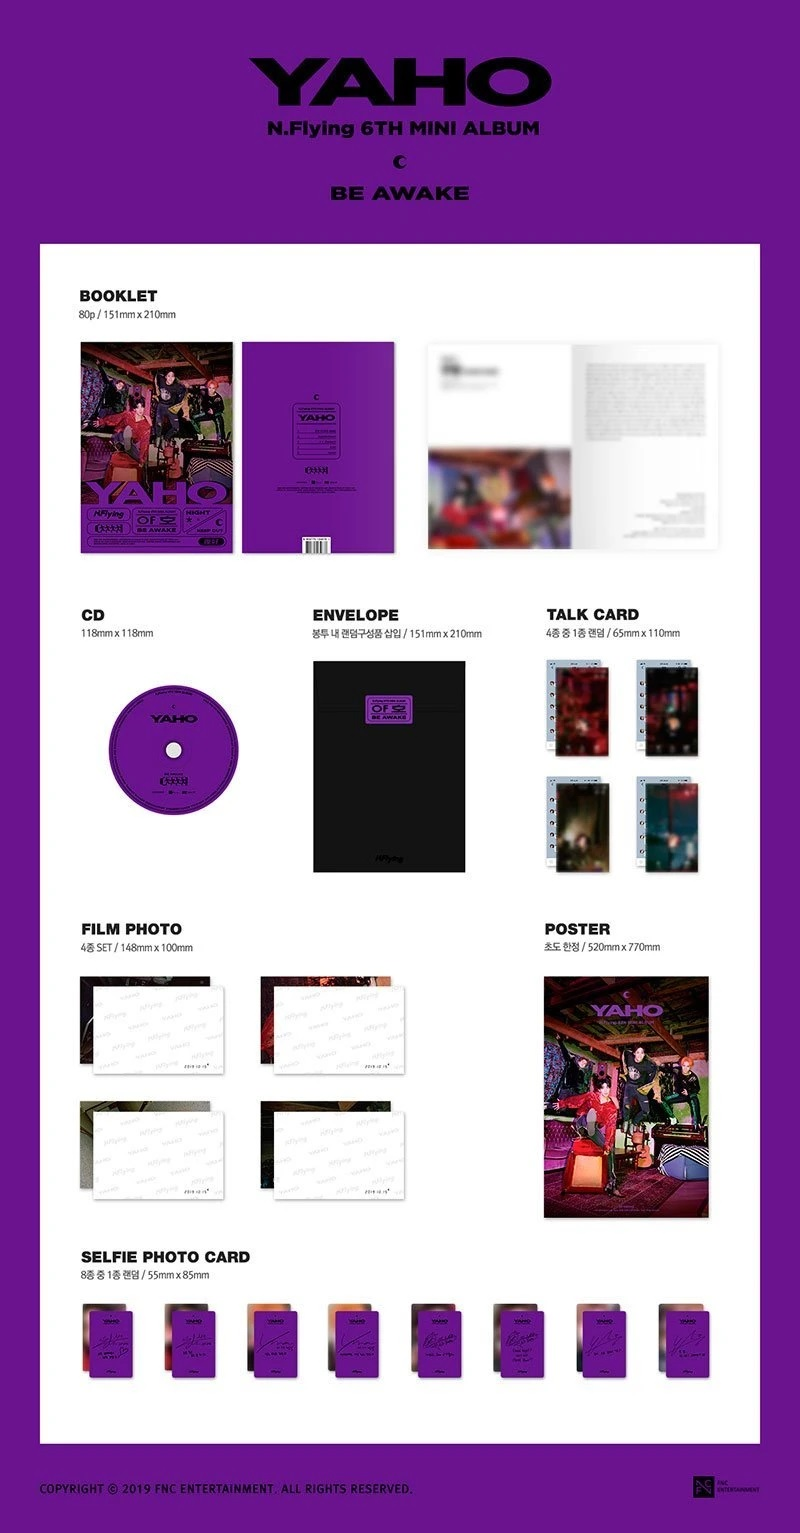 nflying yaho cd content1